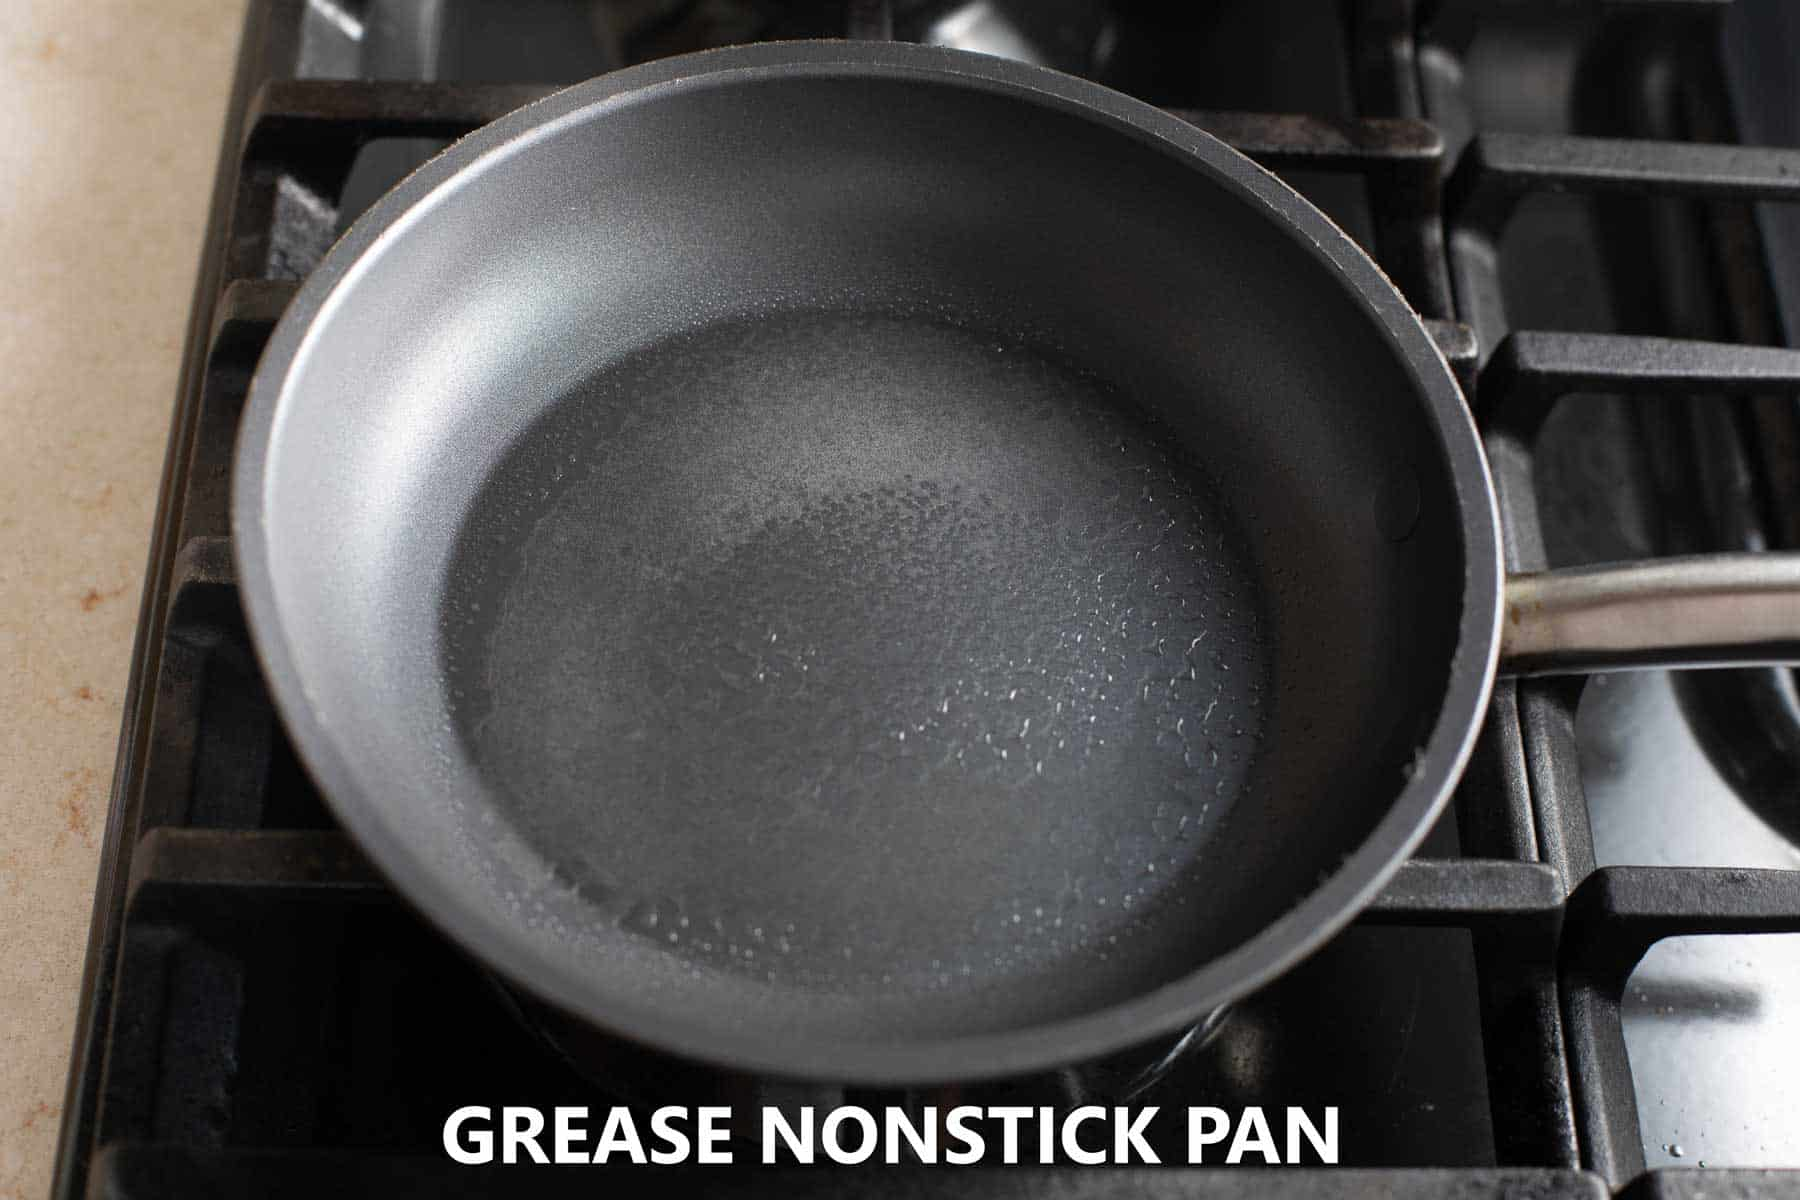 nonstick pan greased with cooking spray on burner